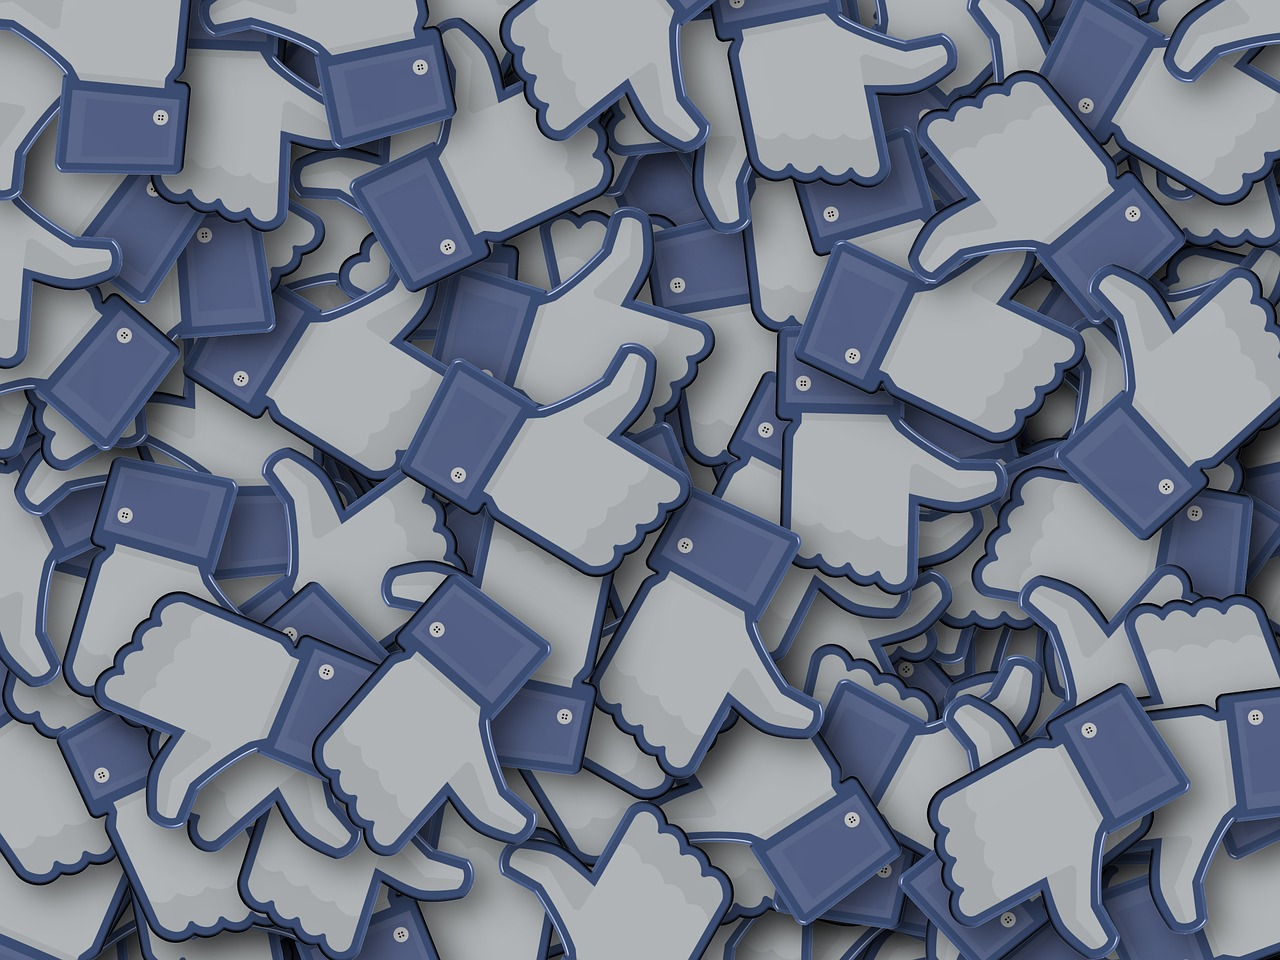 Facebook Users got in Panic over a Hoax News / Digital